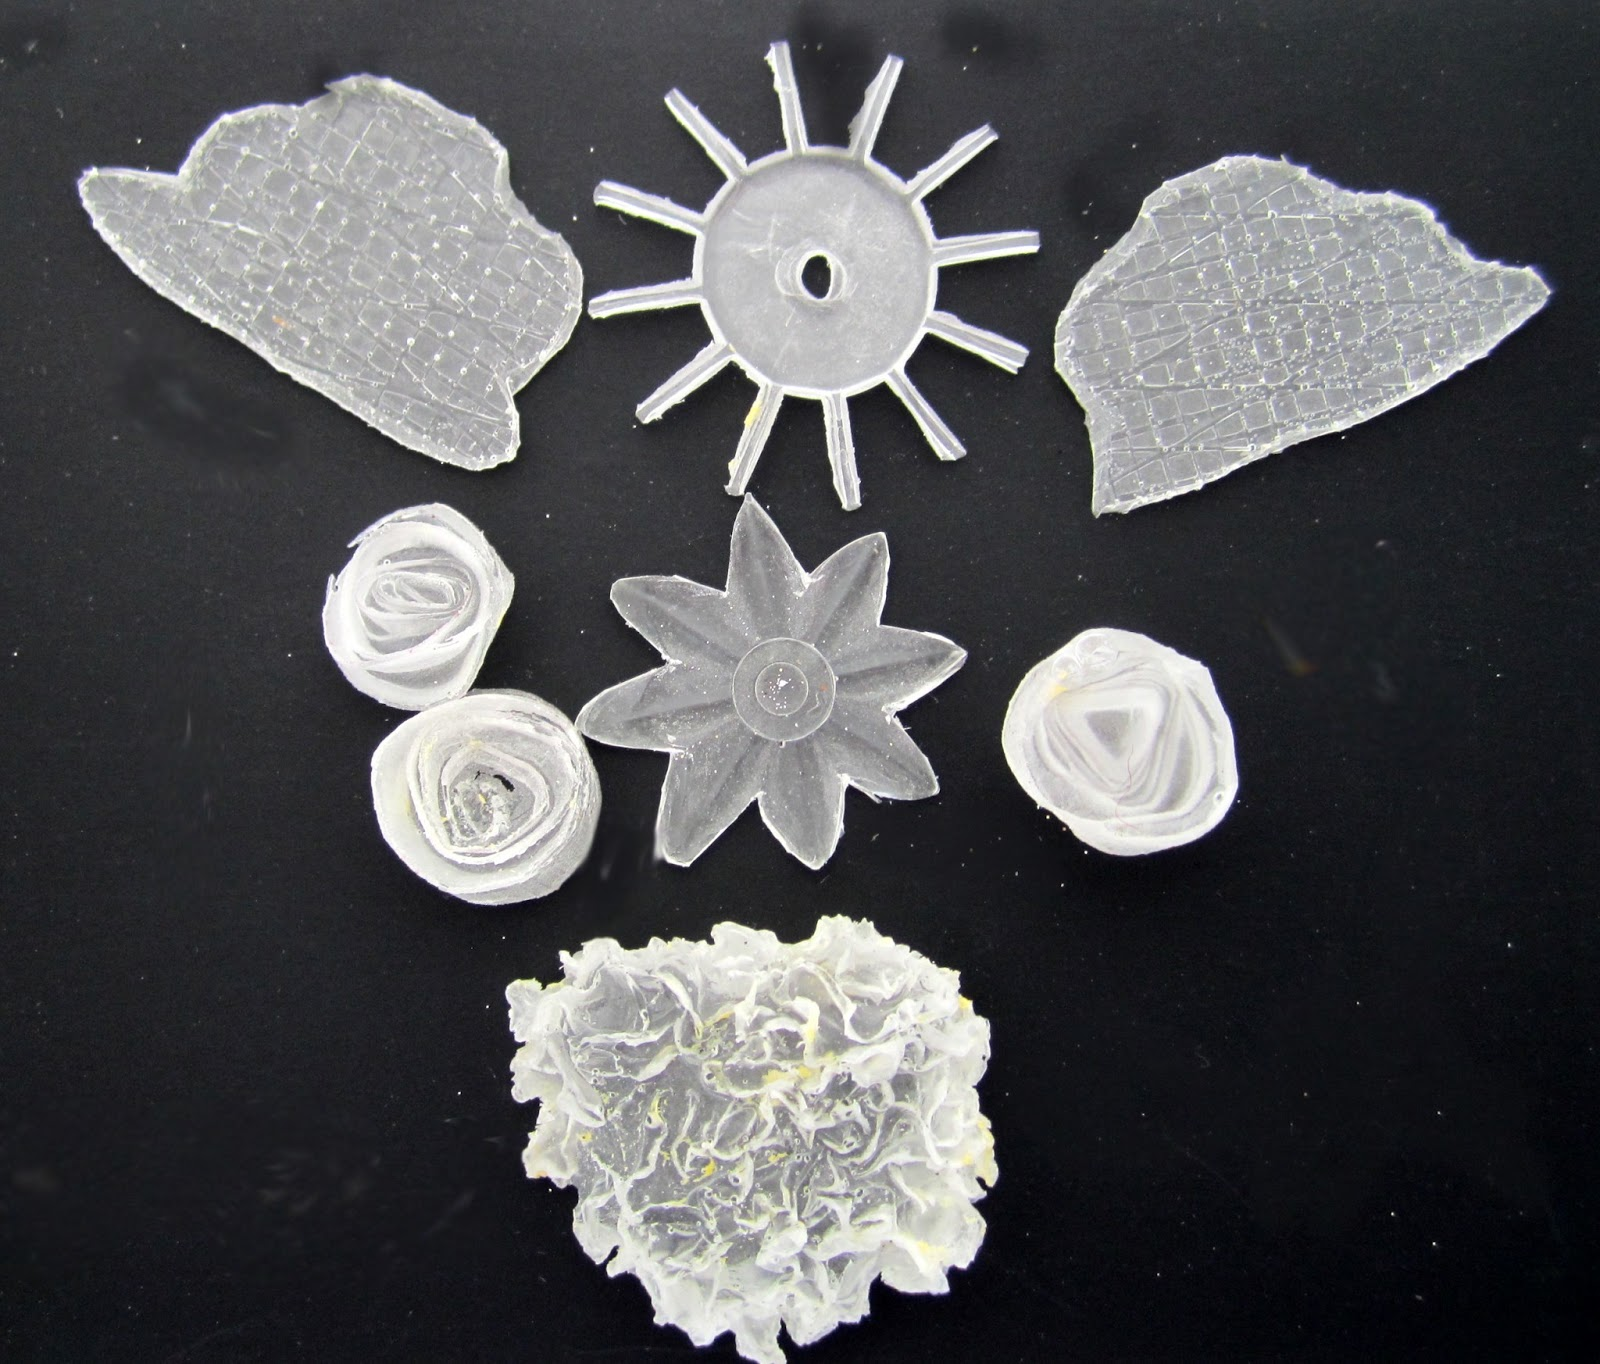 clear casting resin instructions